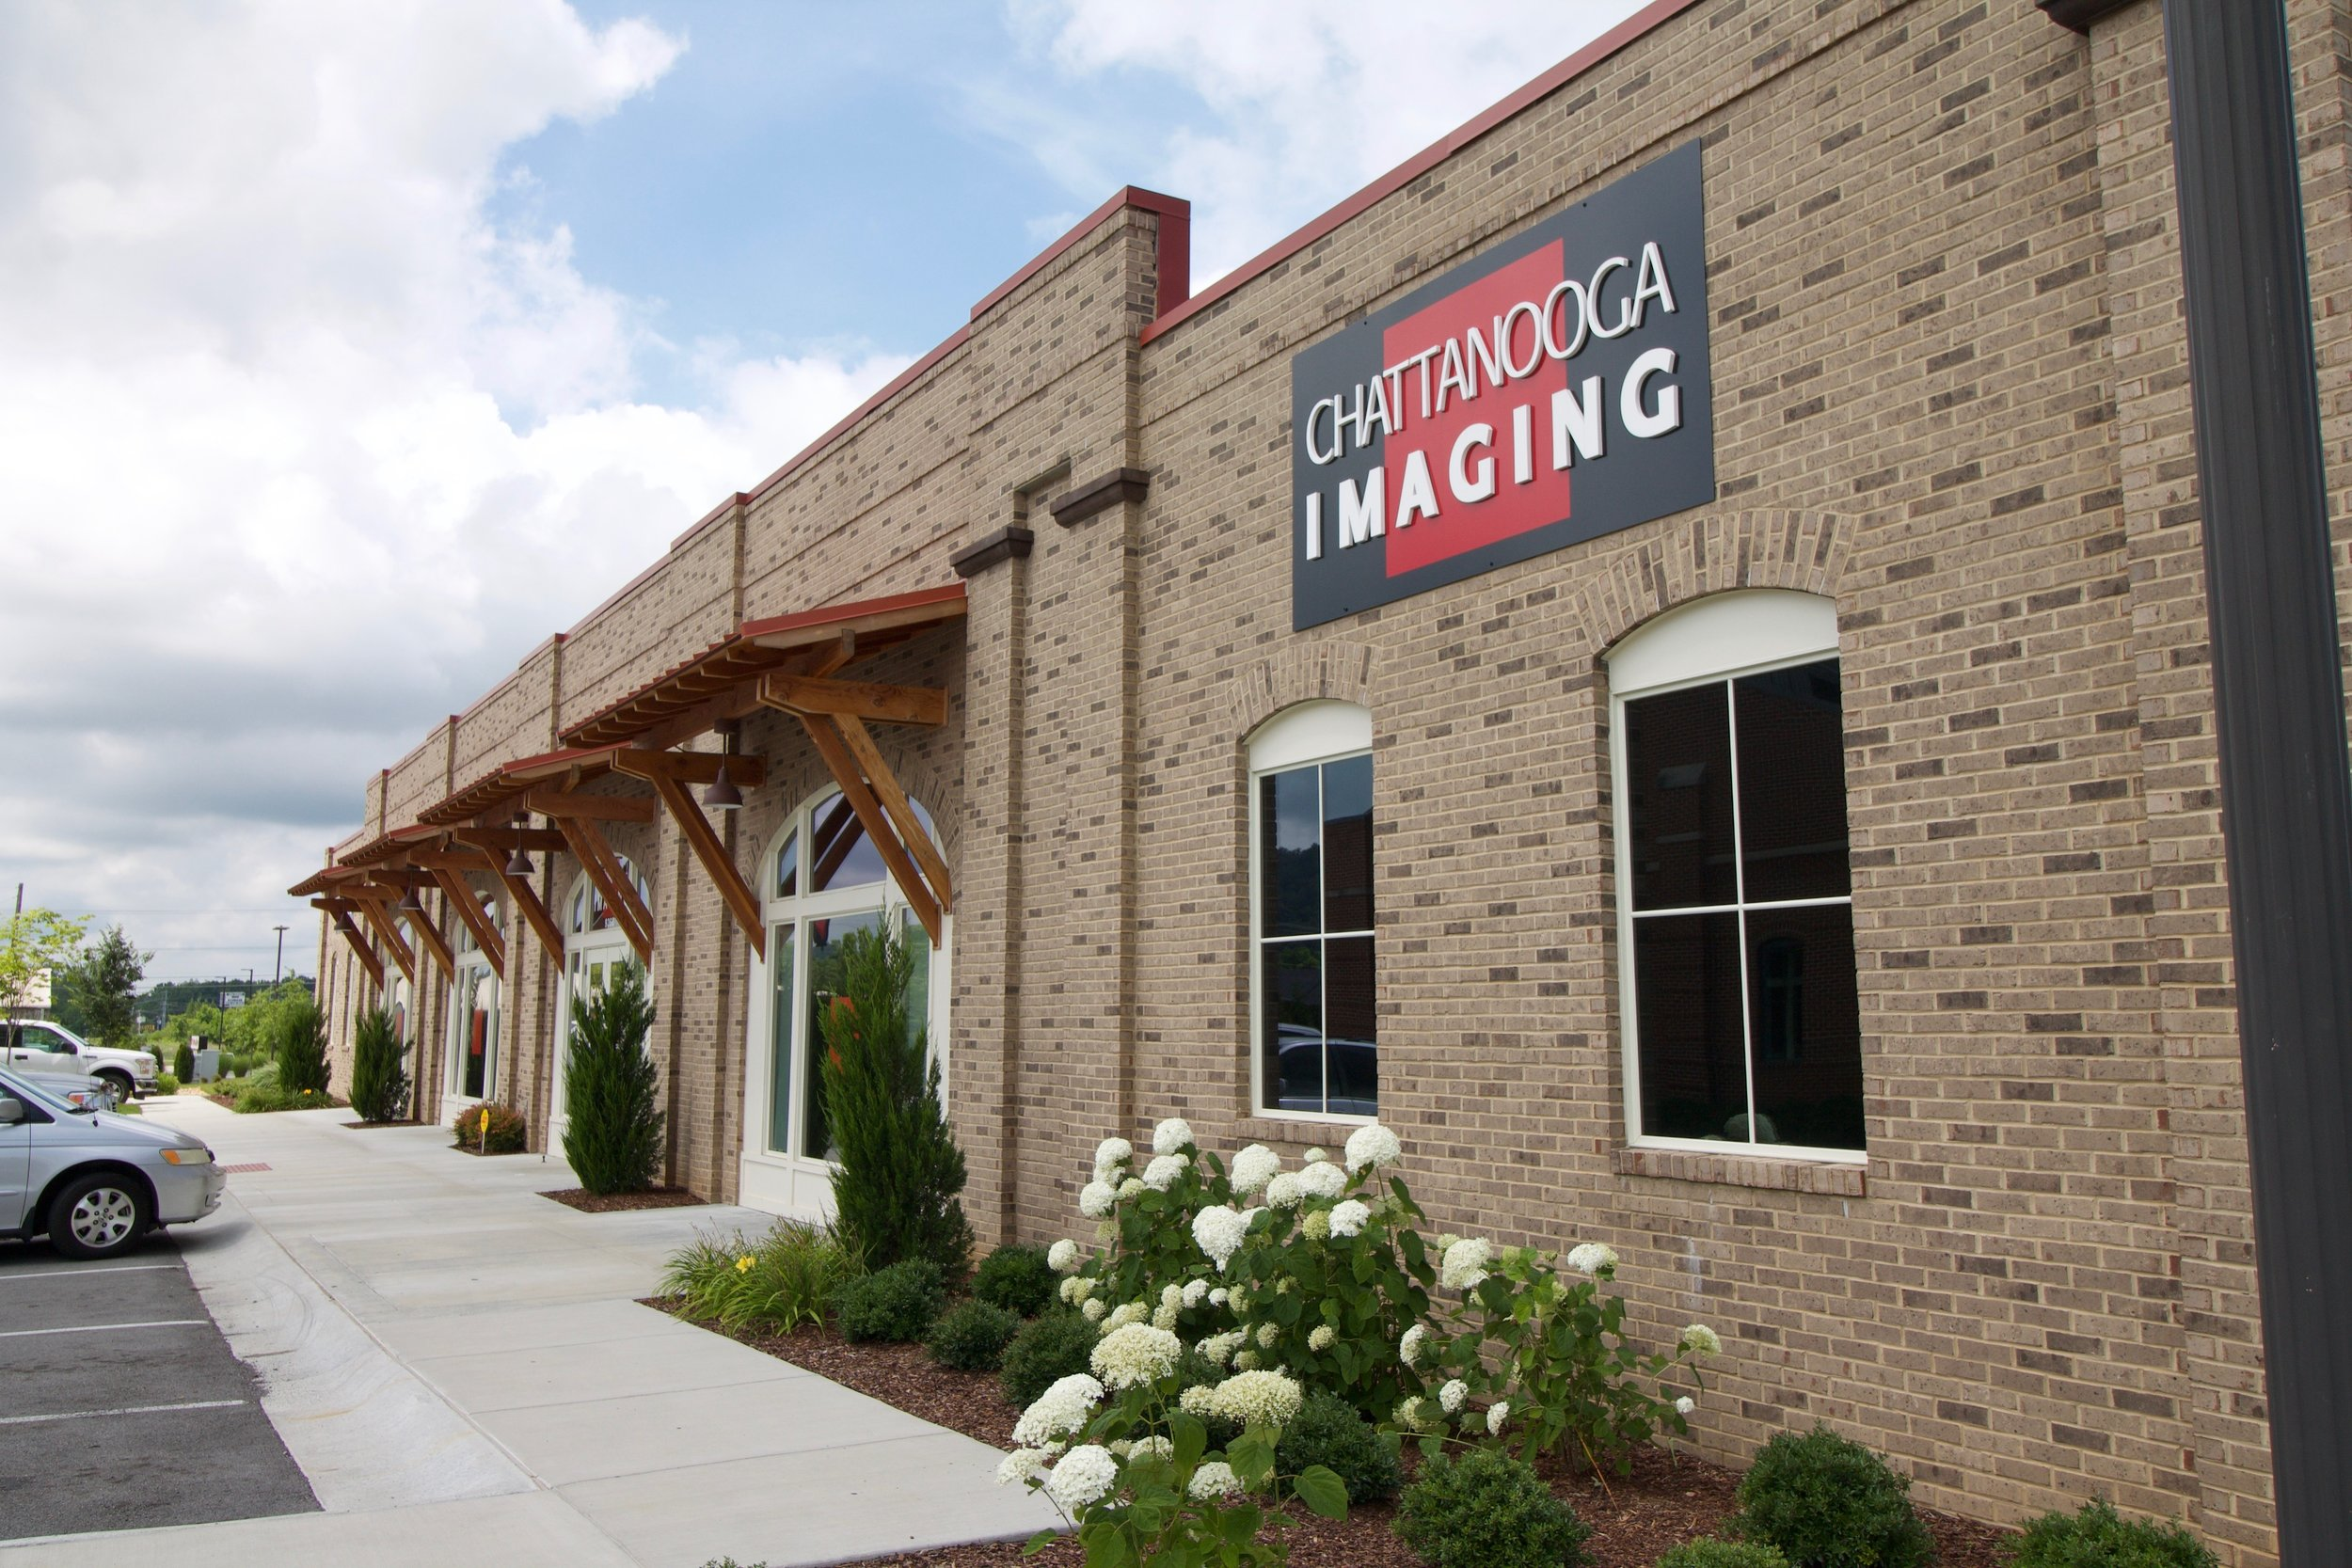 9,000 Square Foot Chattanooga Imaging Center